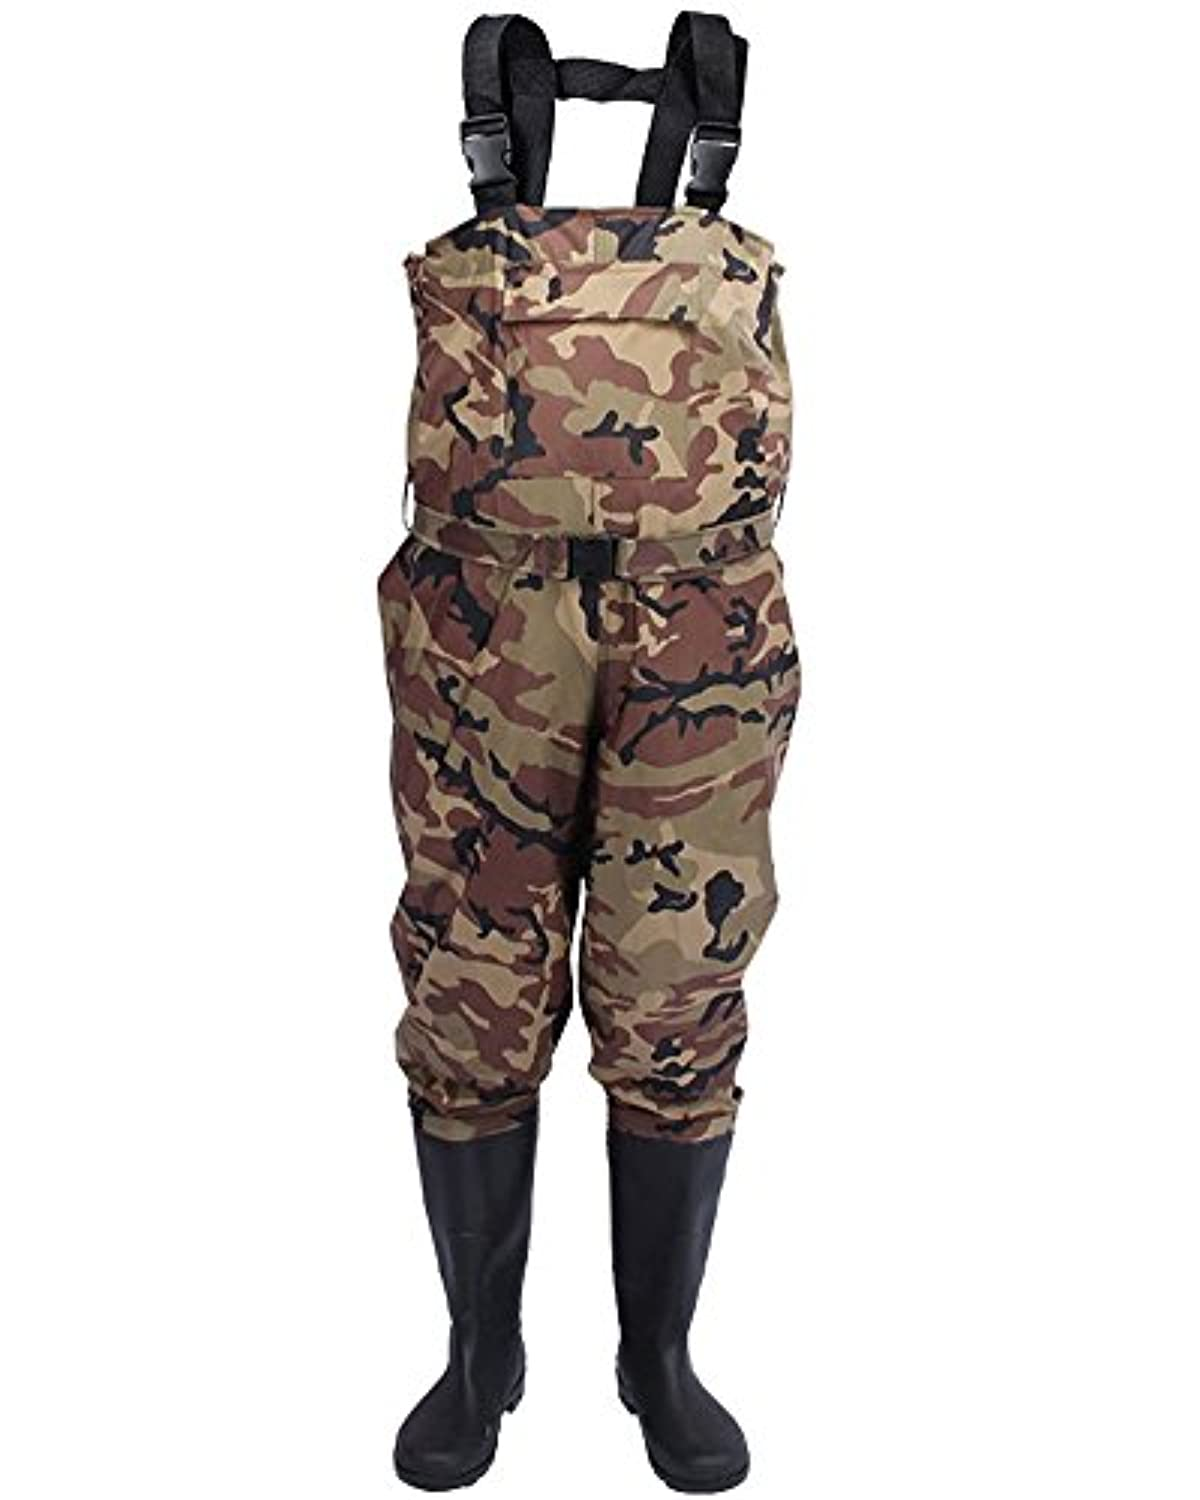 nachvornナイロンカモBootfoot胸釣りハンティングWaders